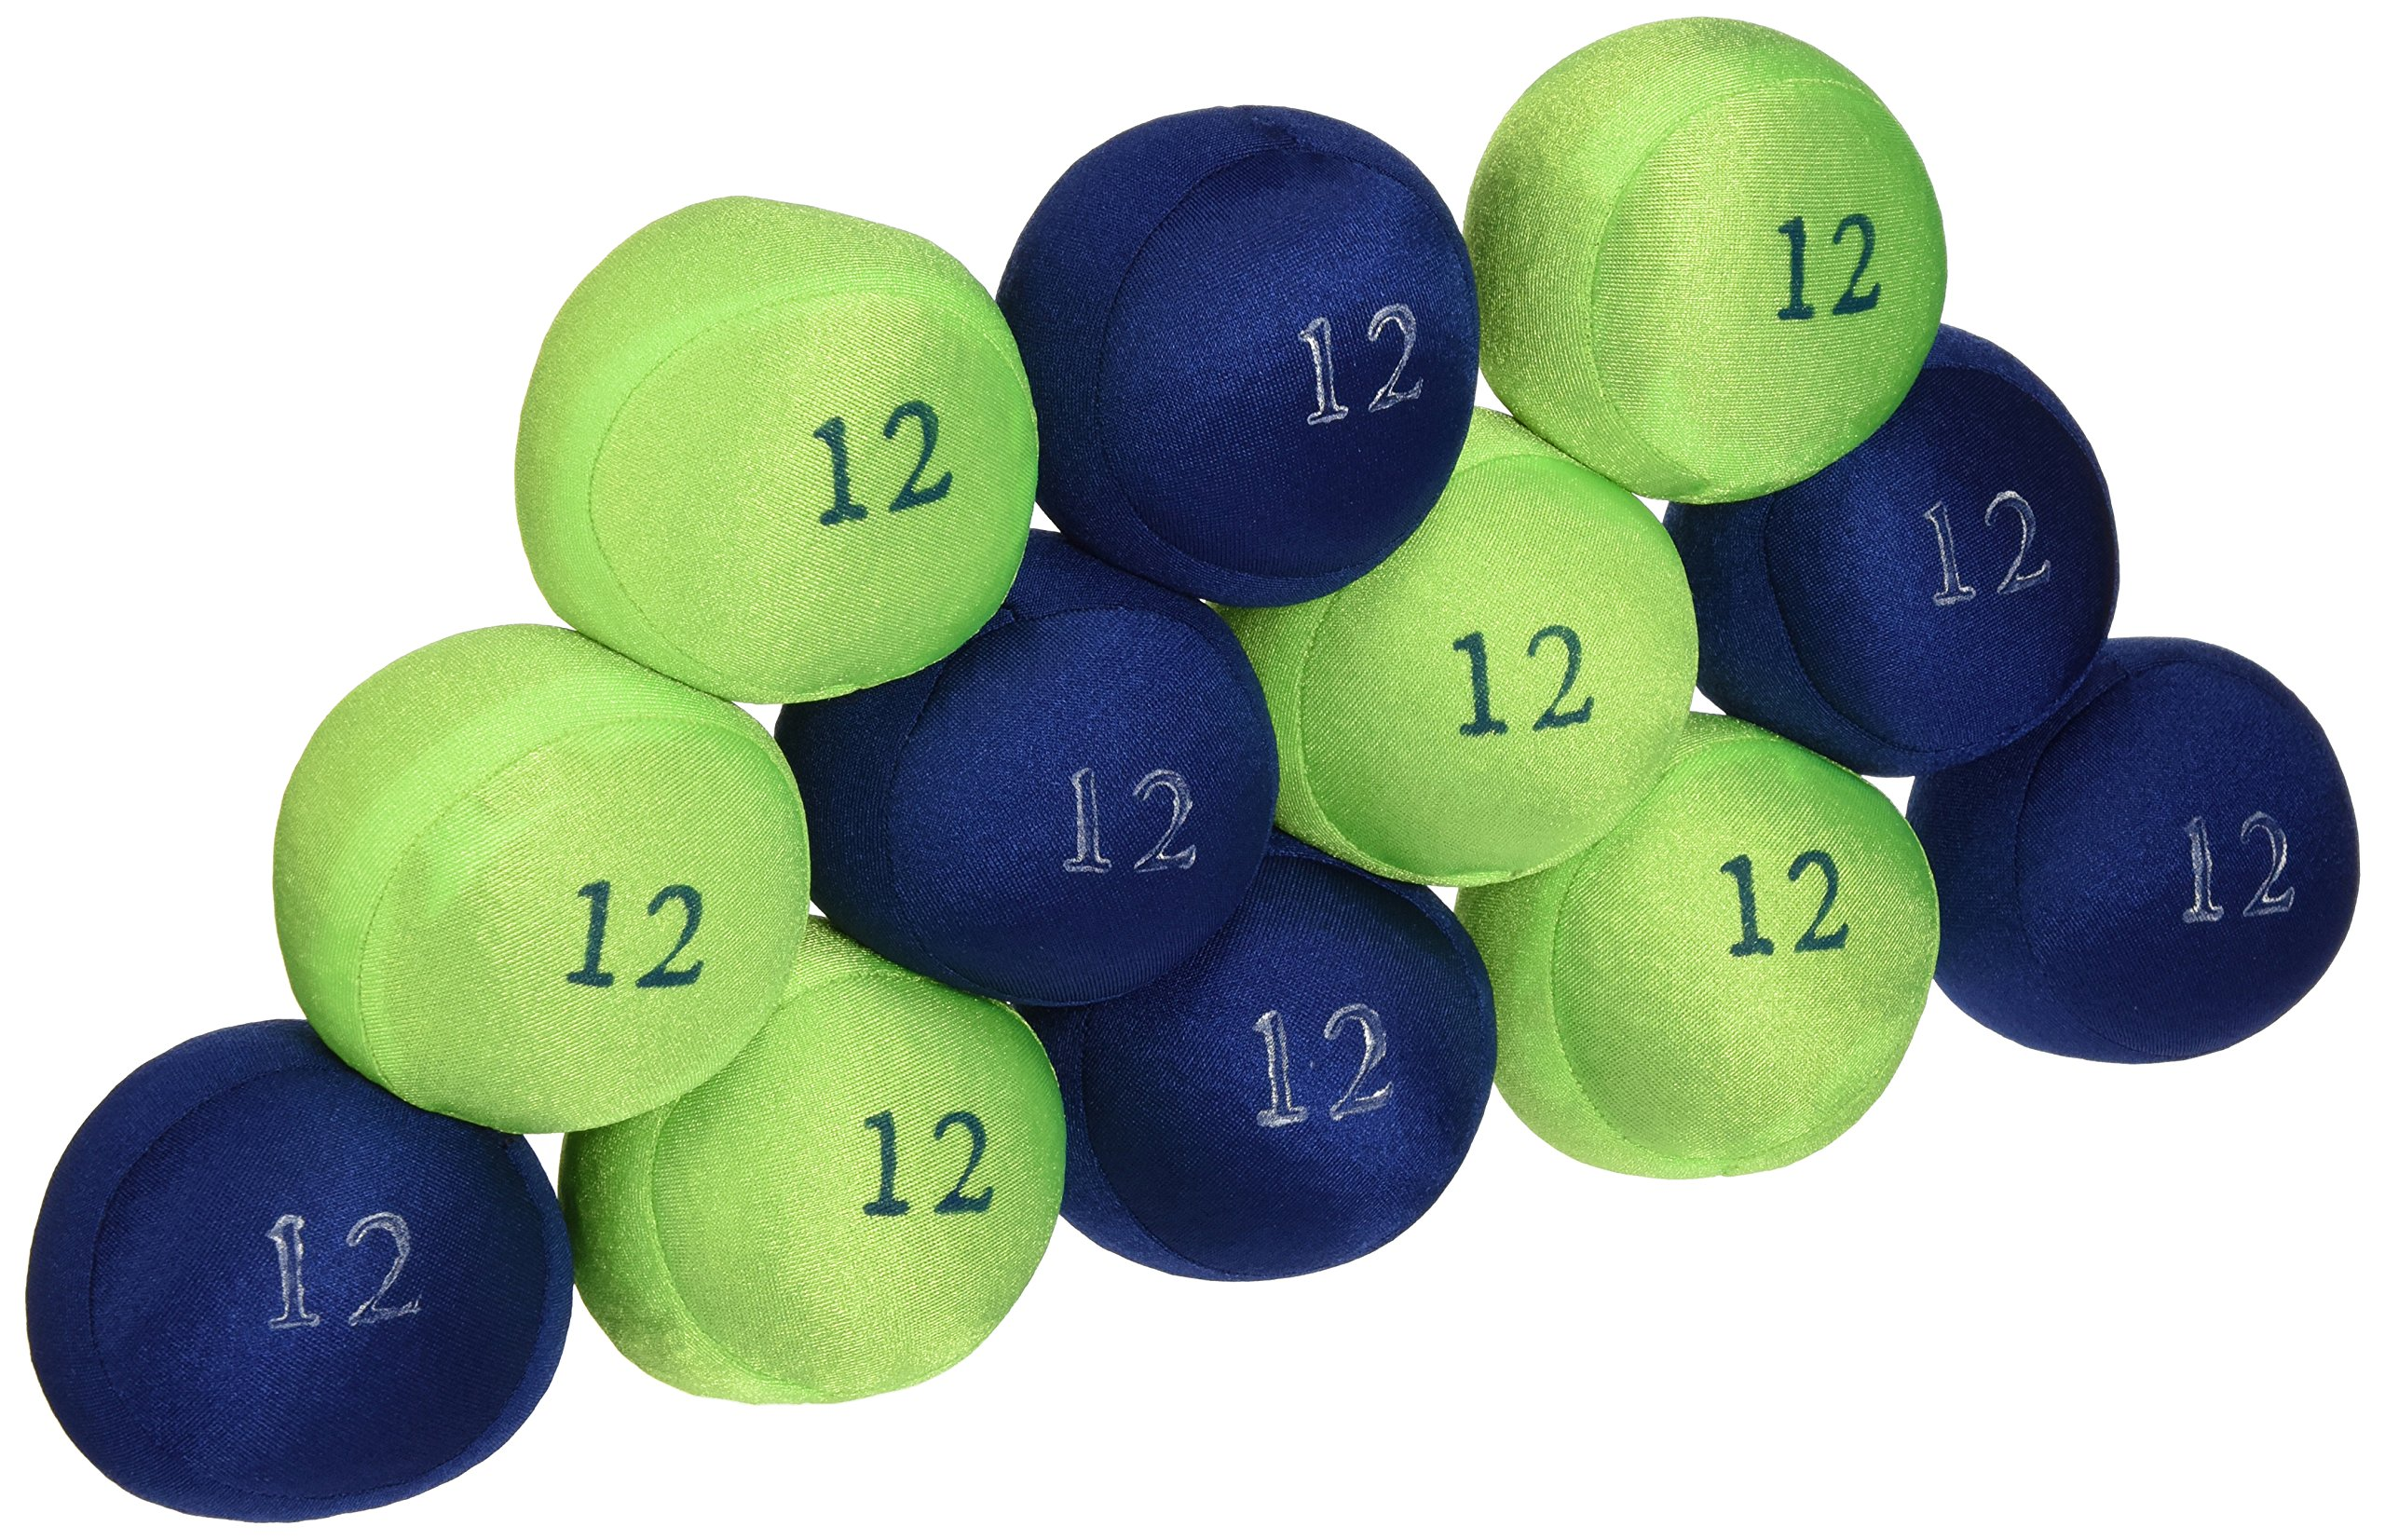 Lavender Luvies Lavender Stress Balls, Seahawks 12th Man - 12 Pack by Lavender Luvies (Image #1)